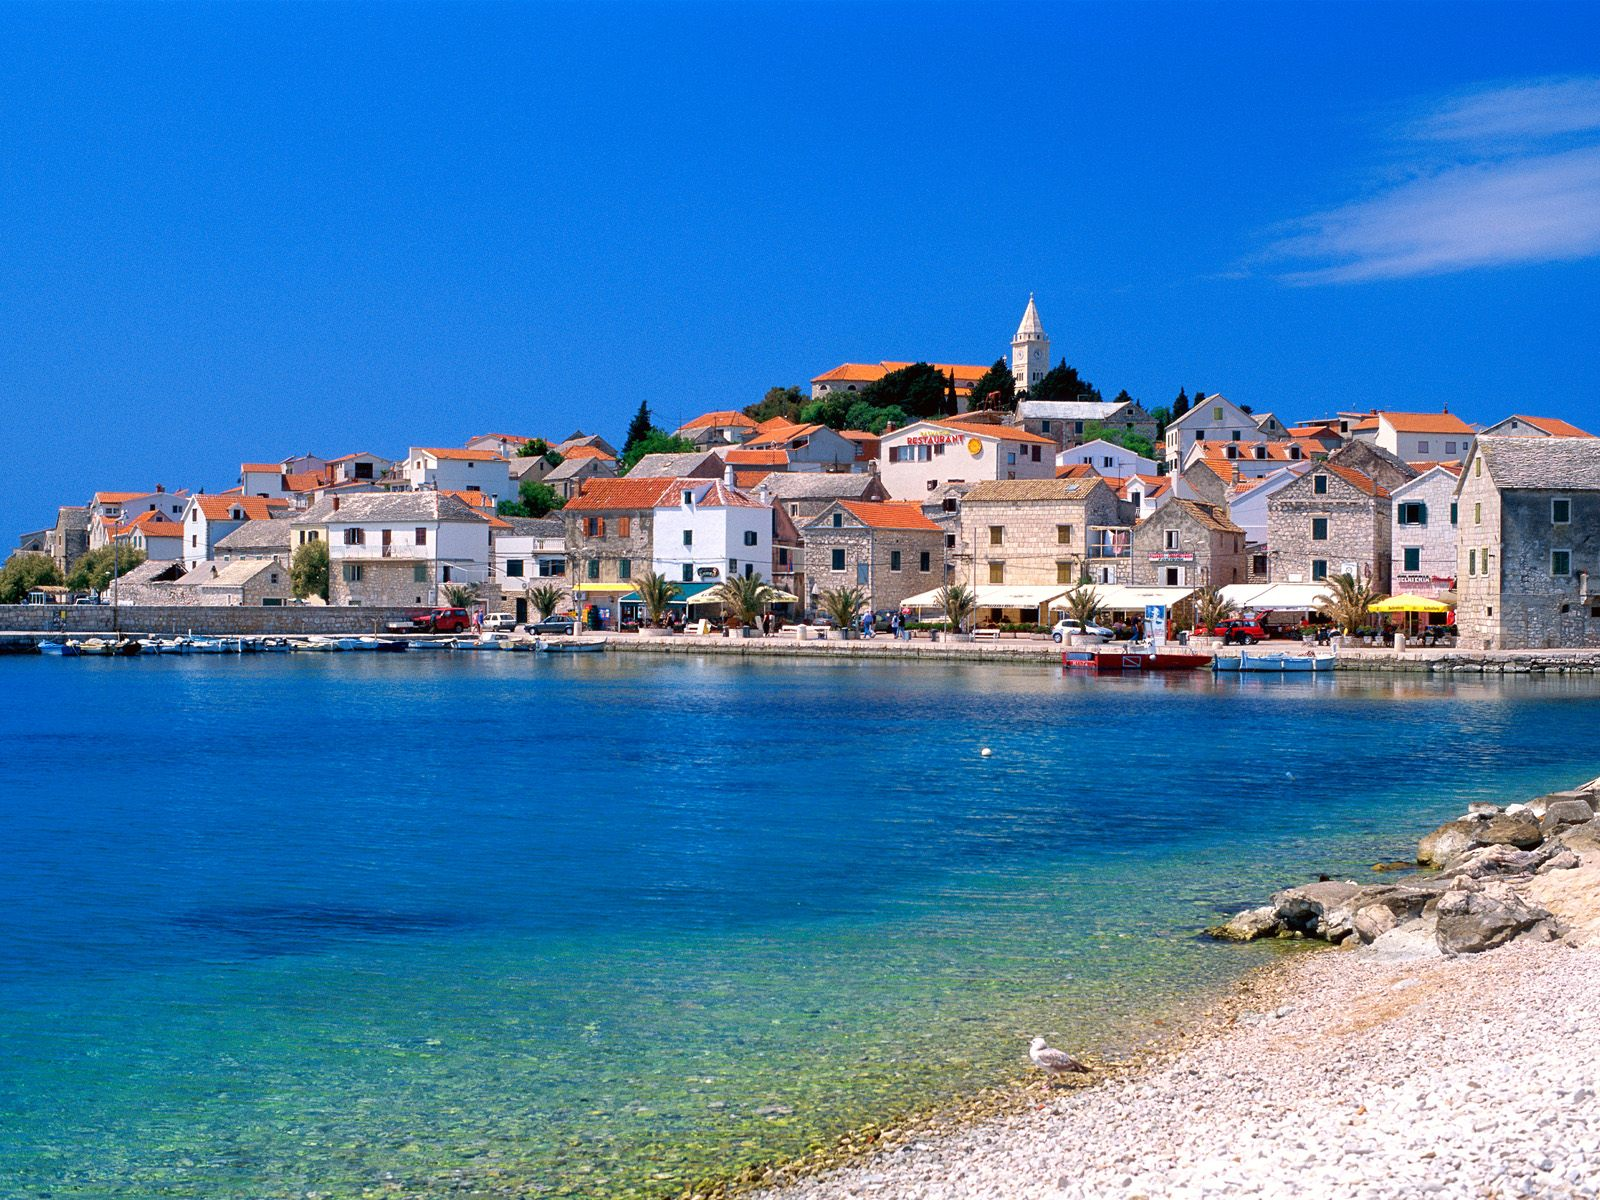 Holiday or Tourism In Croatia - Places To Visit In Croatia ...